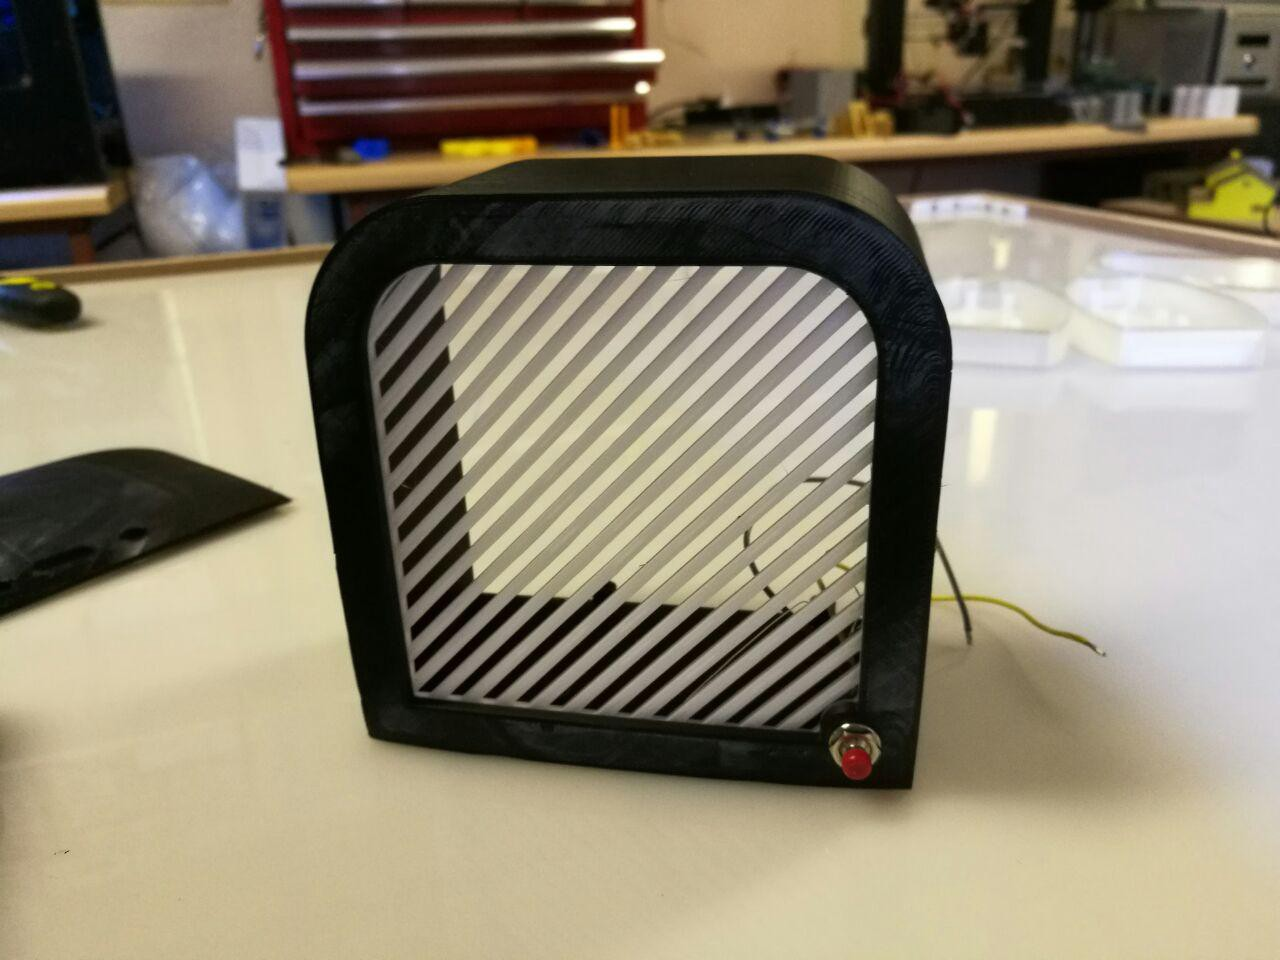 voice-security-3Dprinted-pic.jpeg